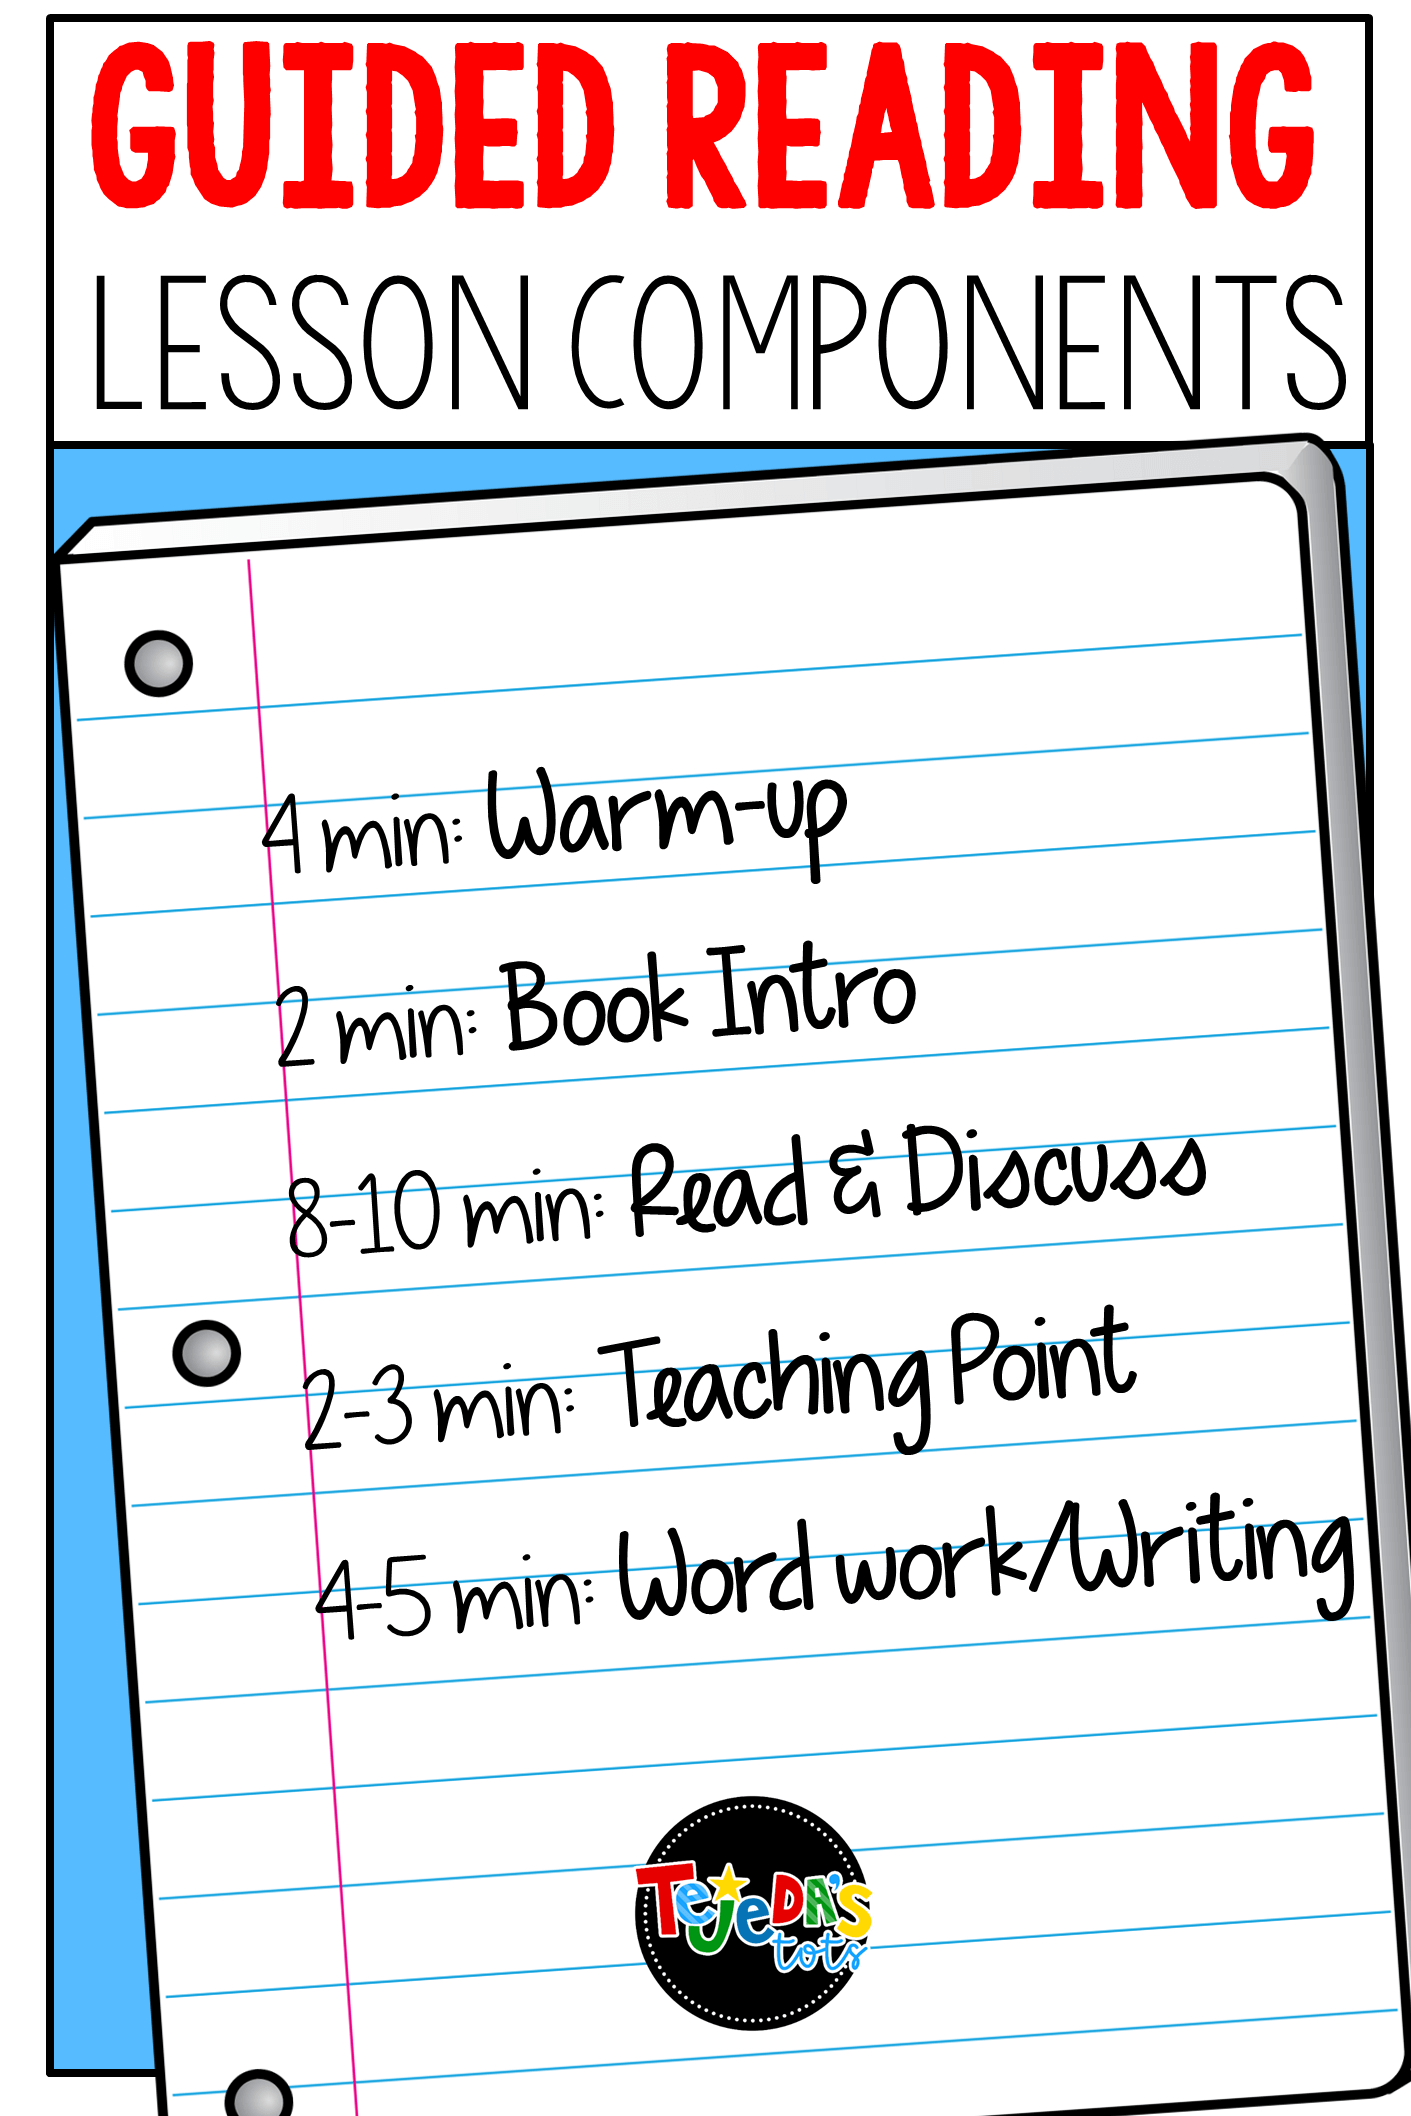 Guided Reading Lesson Components